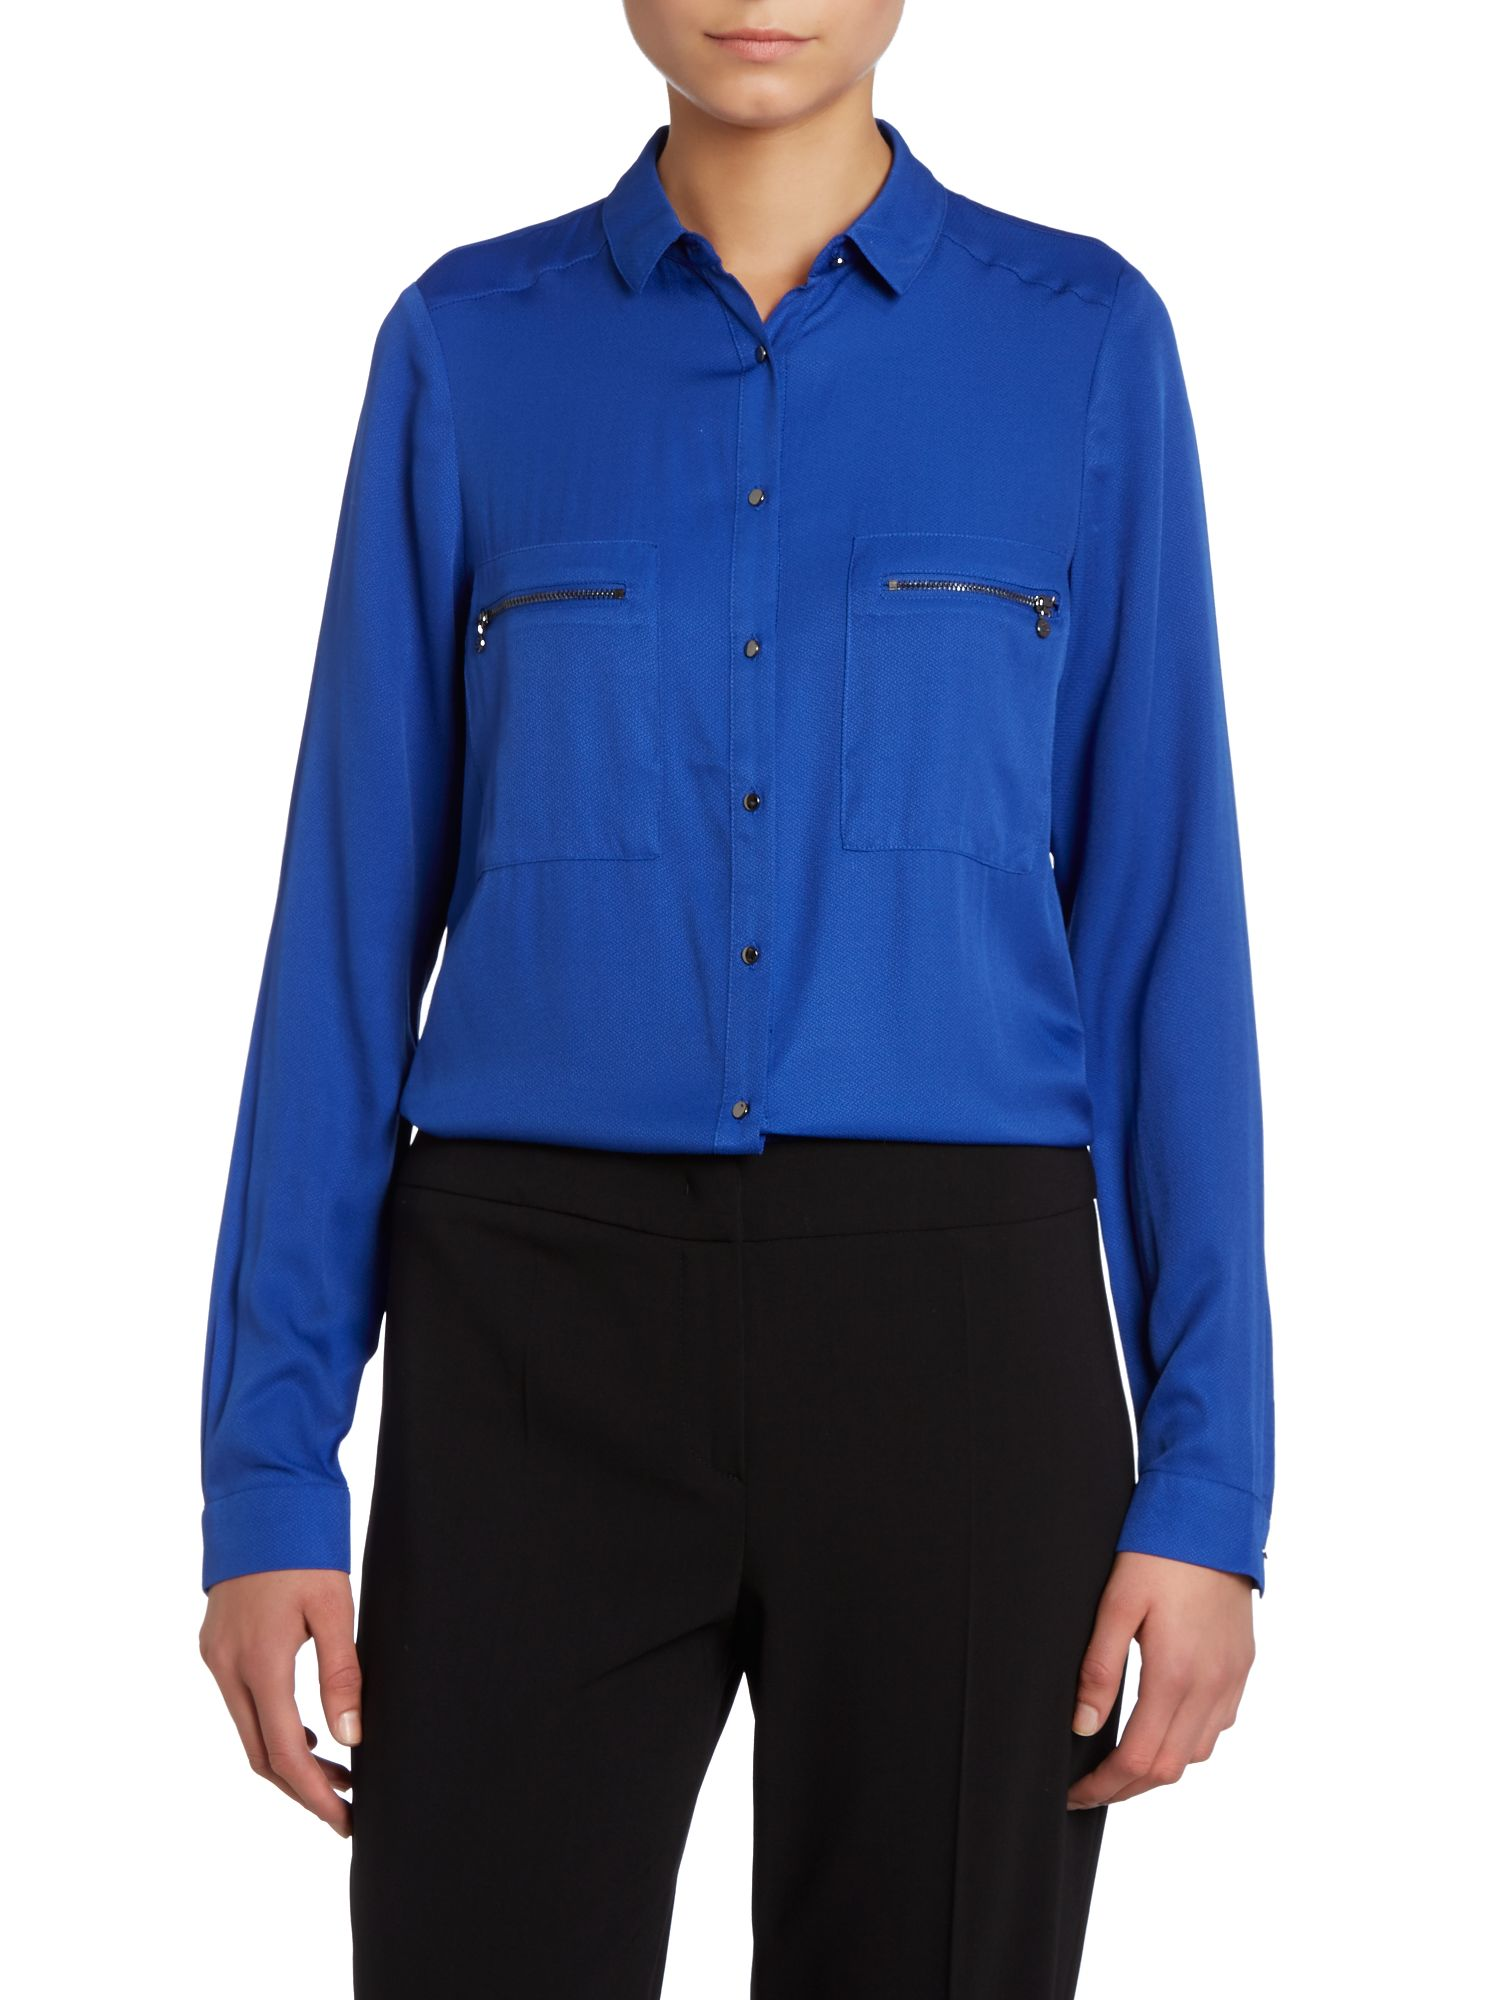 Long sleeve shirt with zip pockets